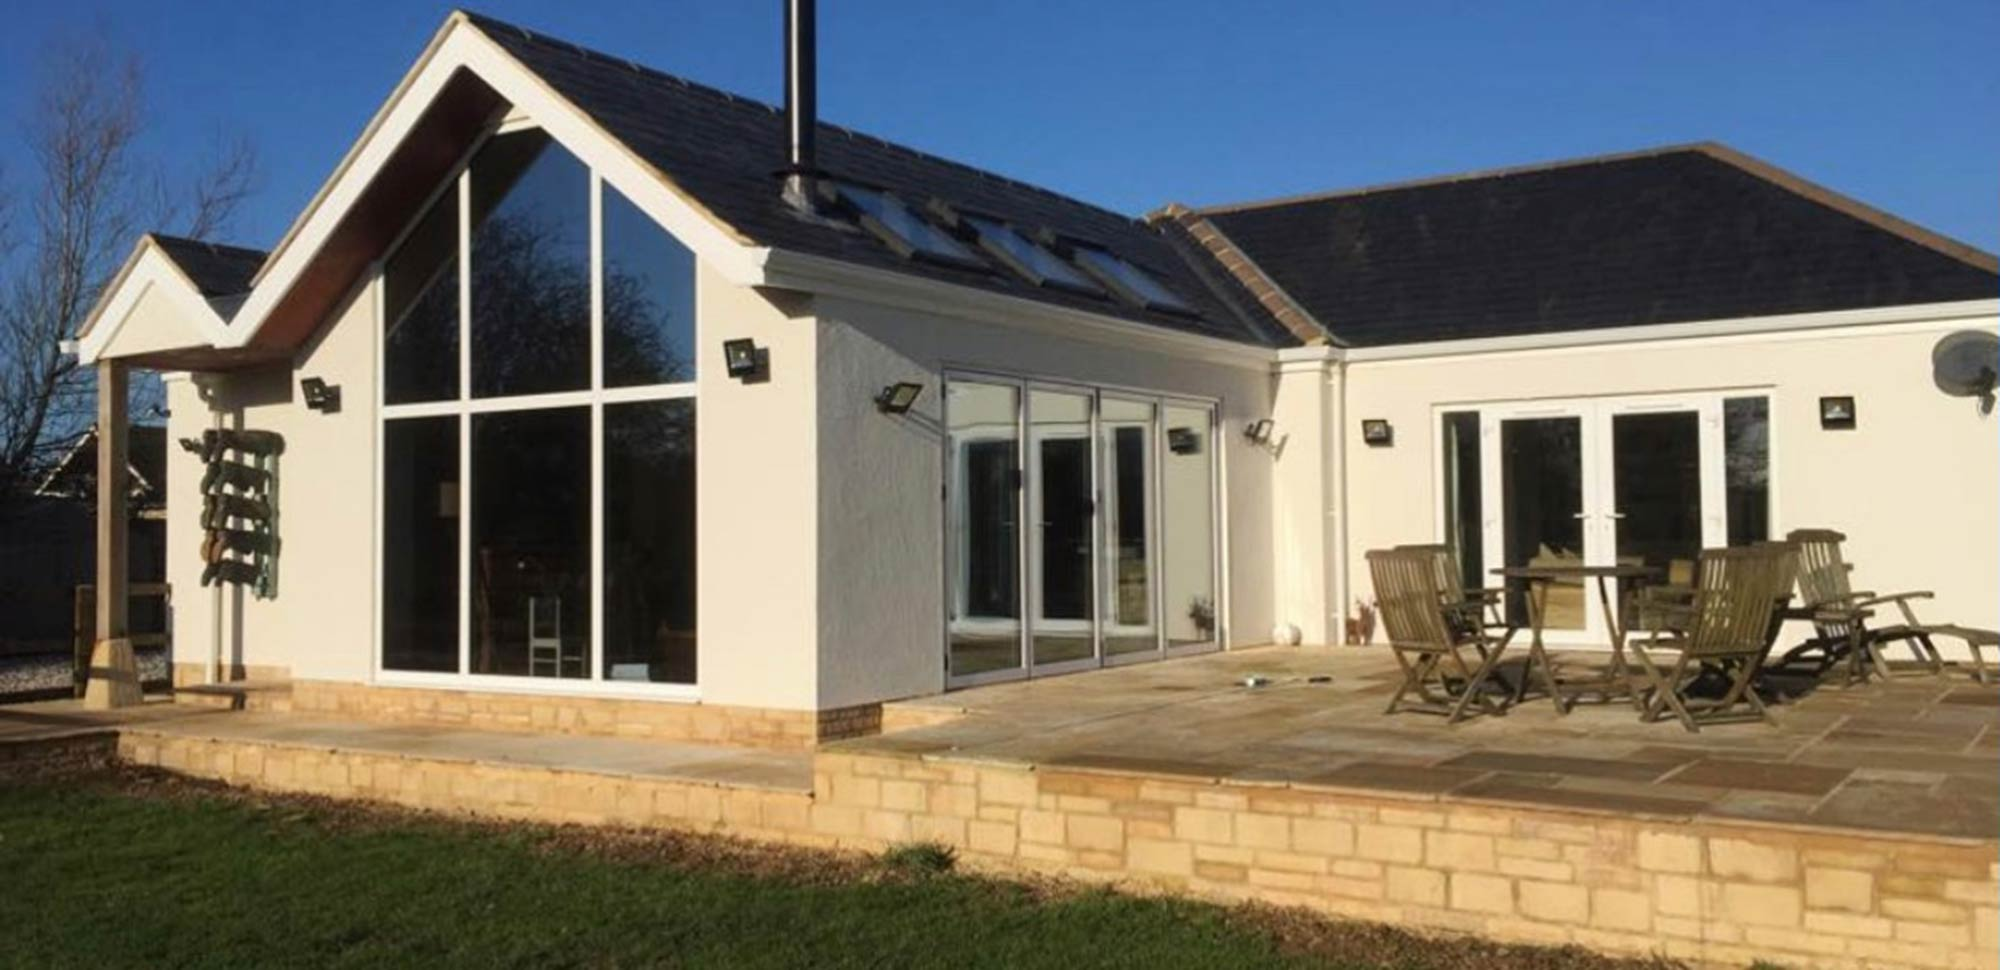 Bungalow with patio in Oxfordshire